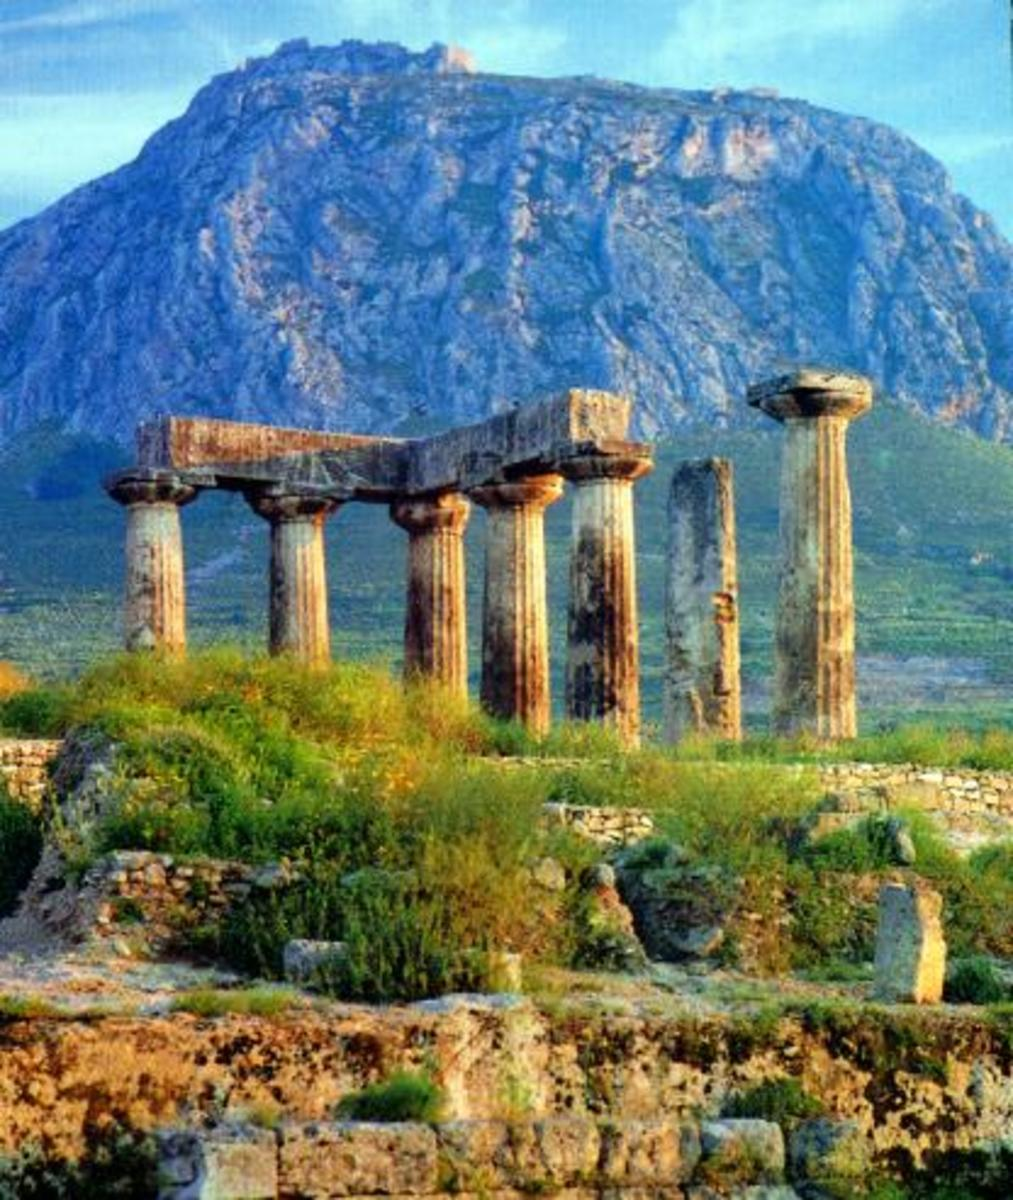 Temple of Apollo, in Corinth with Acro corinth on the mountain in the background.